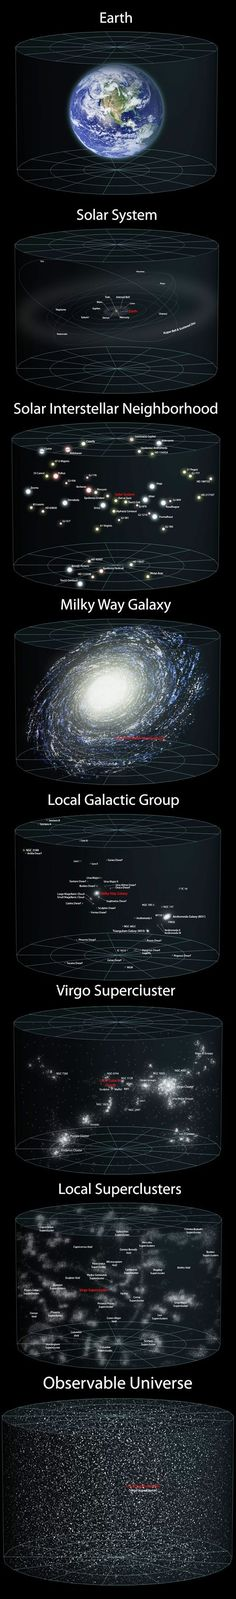 ****<<<ooo>>>****  Perspective in space proportions - just when you thought you knew how vast the universe was...